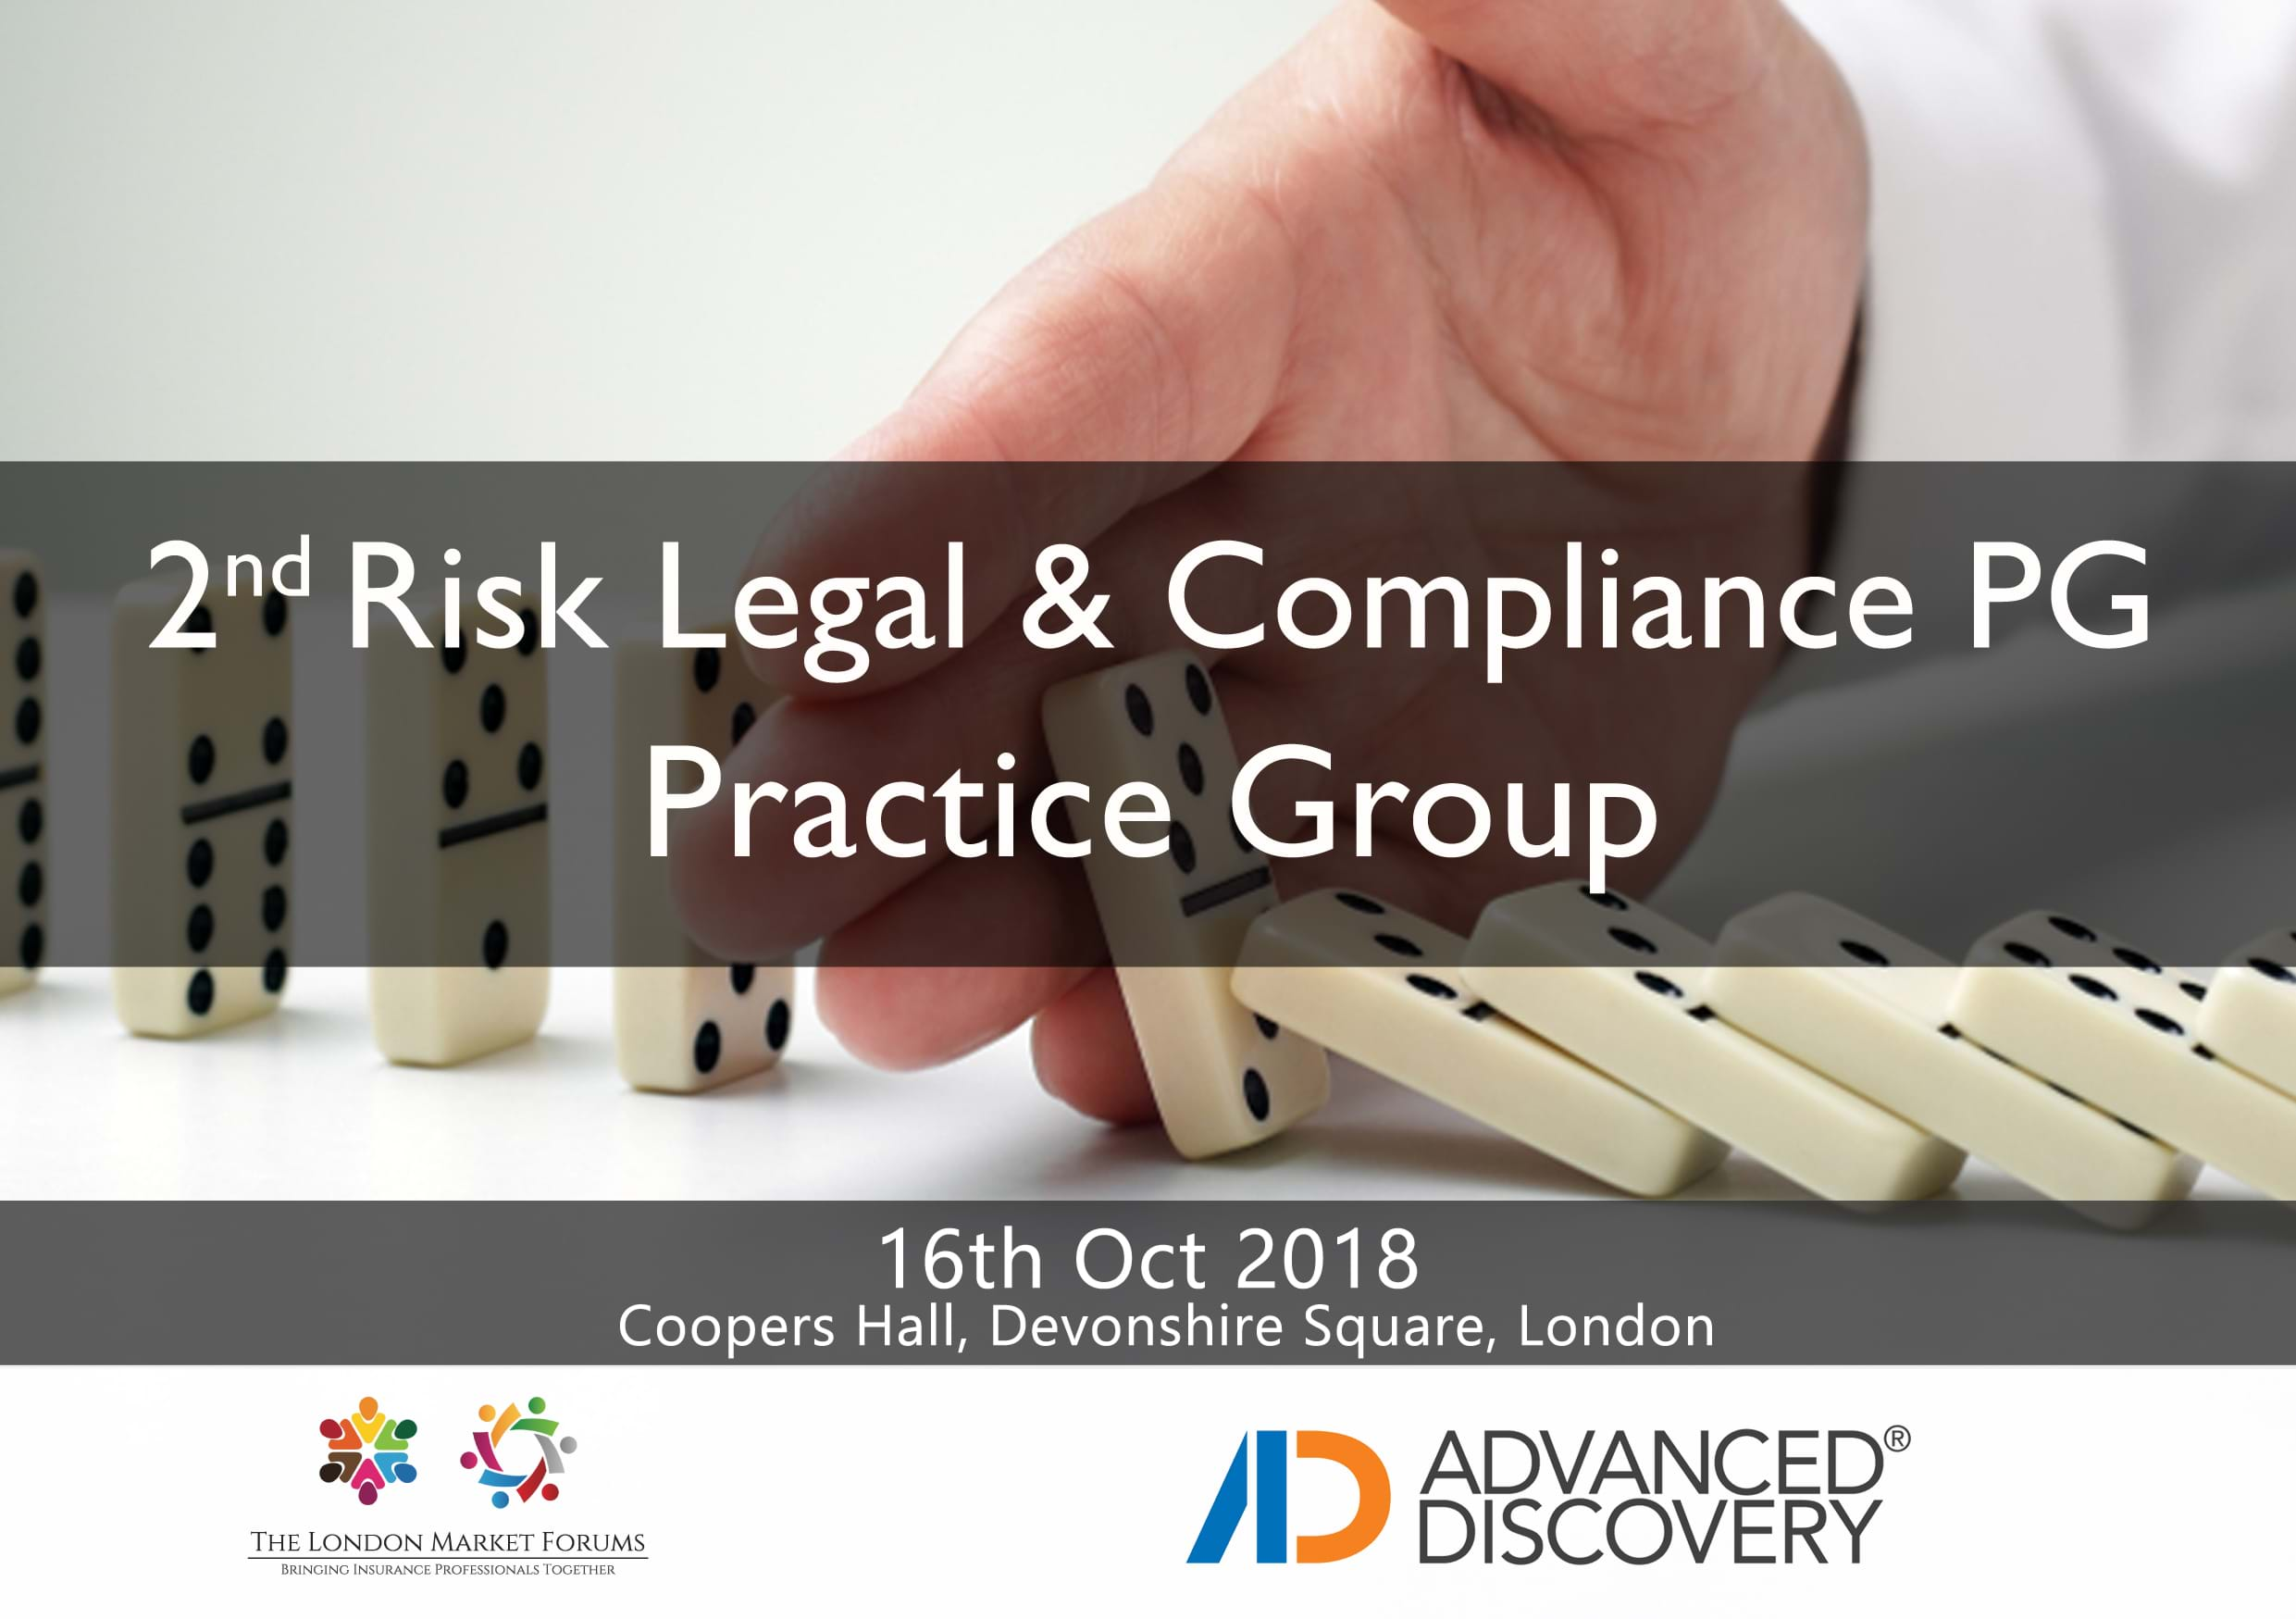 2nd Risk, Legal & Compliance Practice Group- 16th October 2018